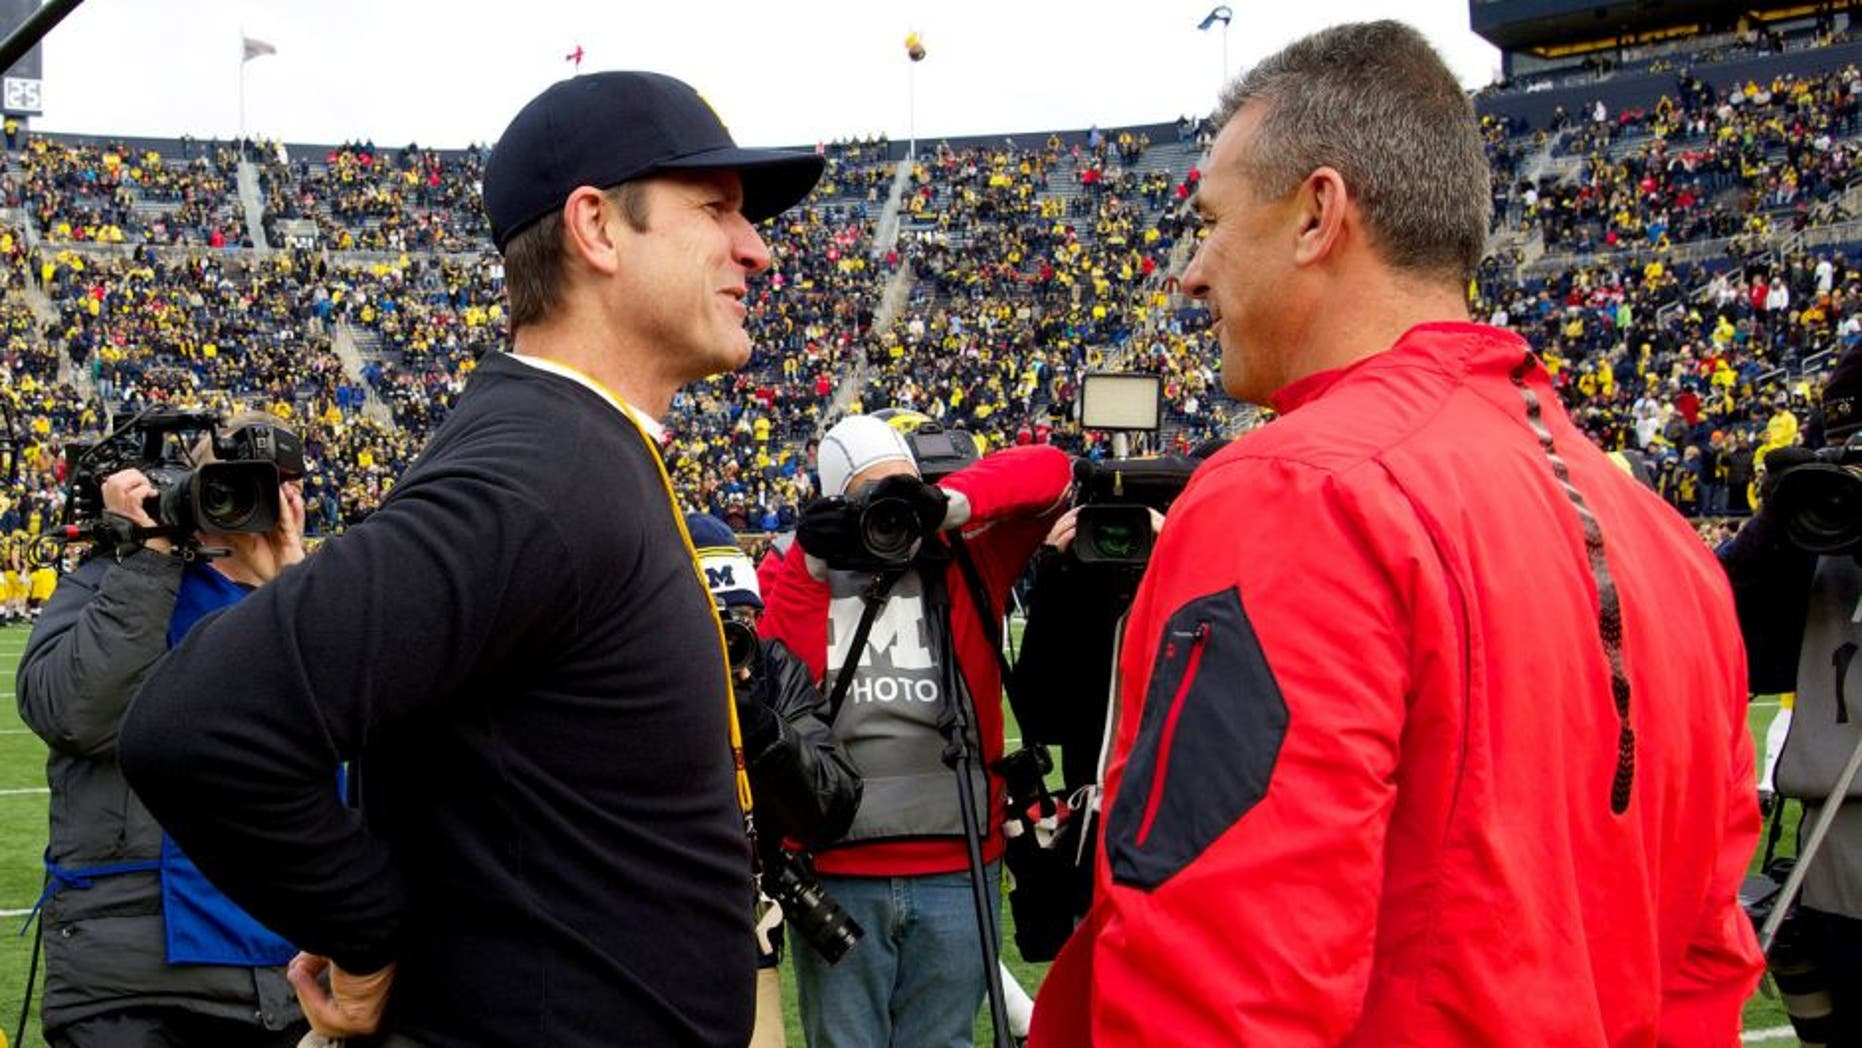 Michigan head coach Jim Harbaugh, left, talks with Ohio State head coach Urban Meyer, right, on the Michigan Stadium field before an NCAA college football game in Ann Arbor, Mich., Saturday, Nov. 28, 2015. (AP Photo/Tony Ding)